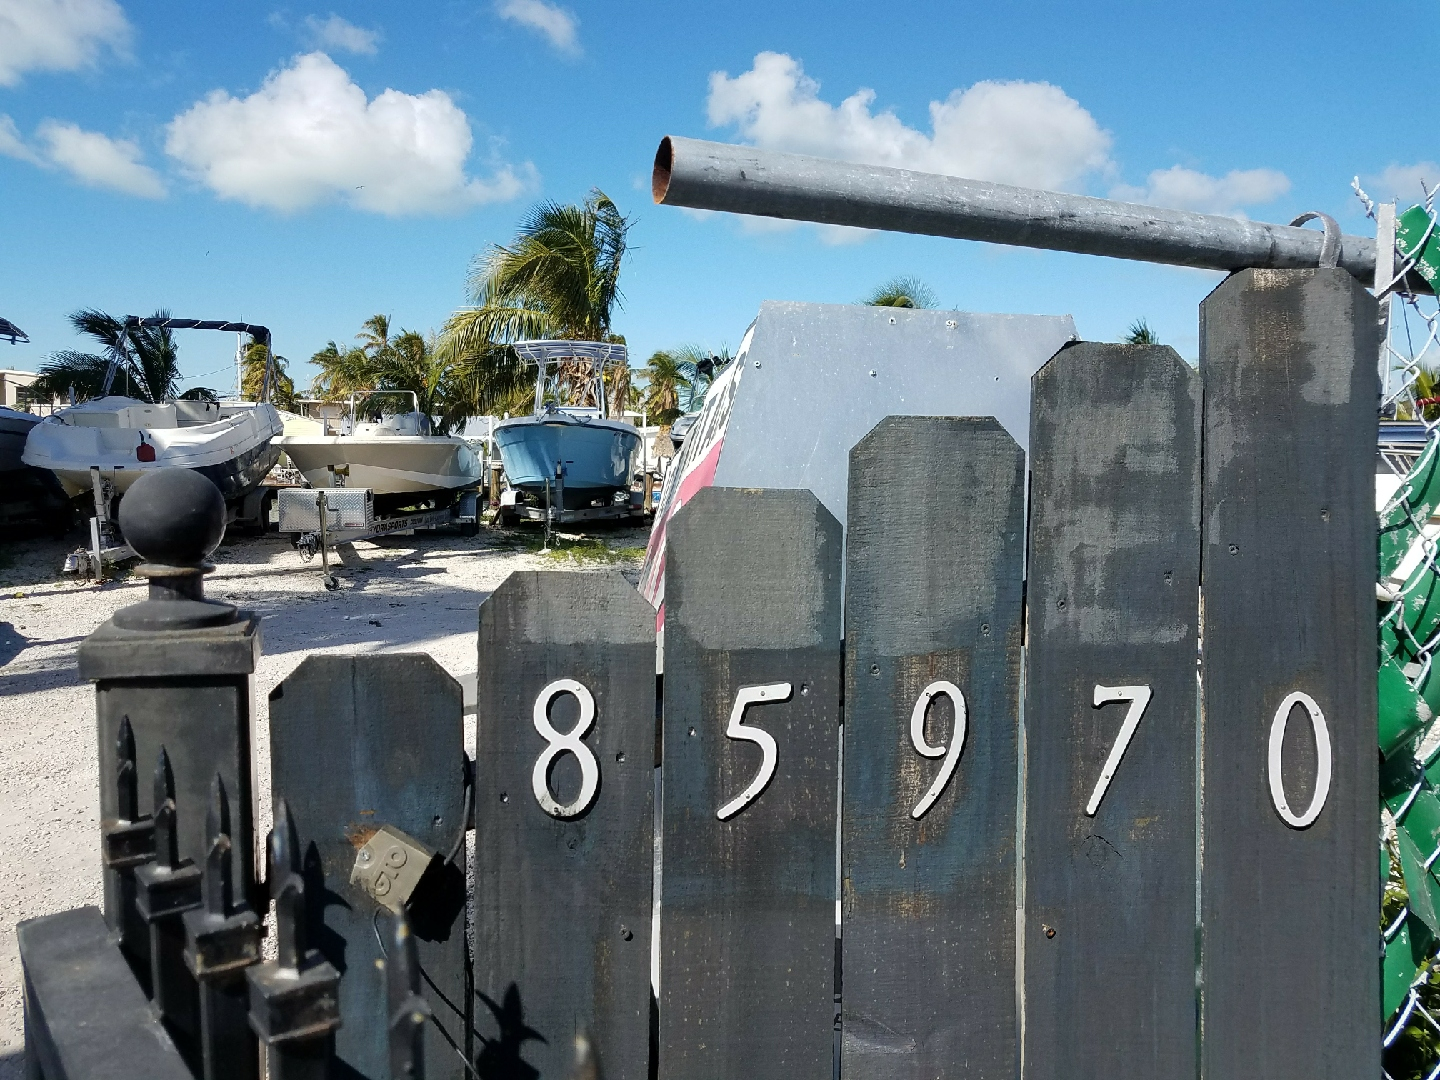 pontoon boats for rent in key west